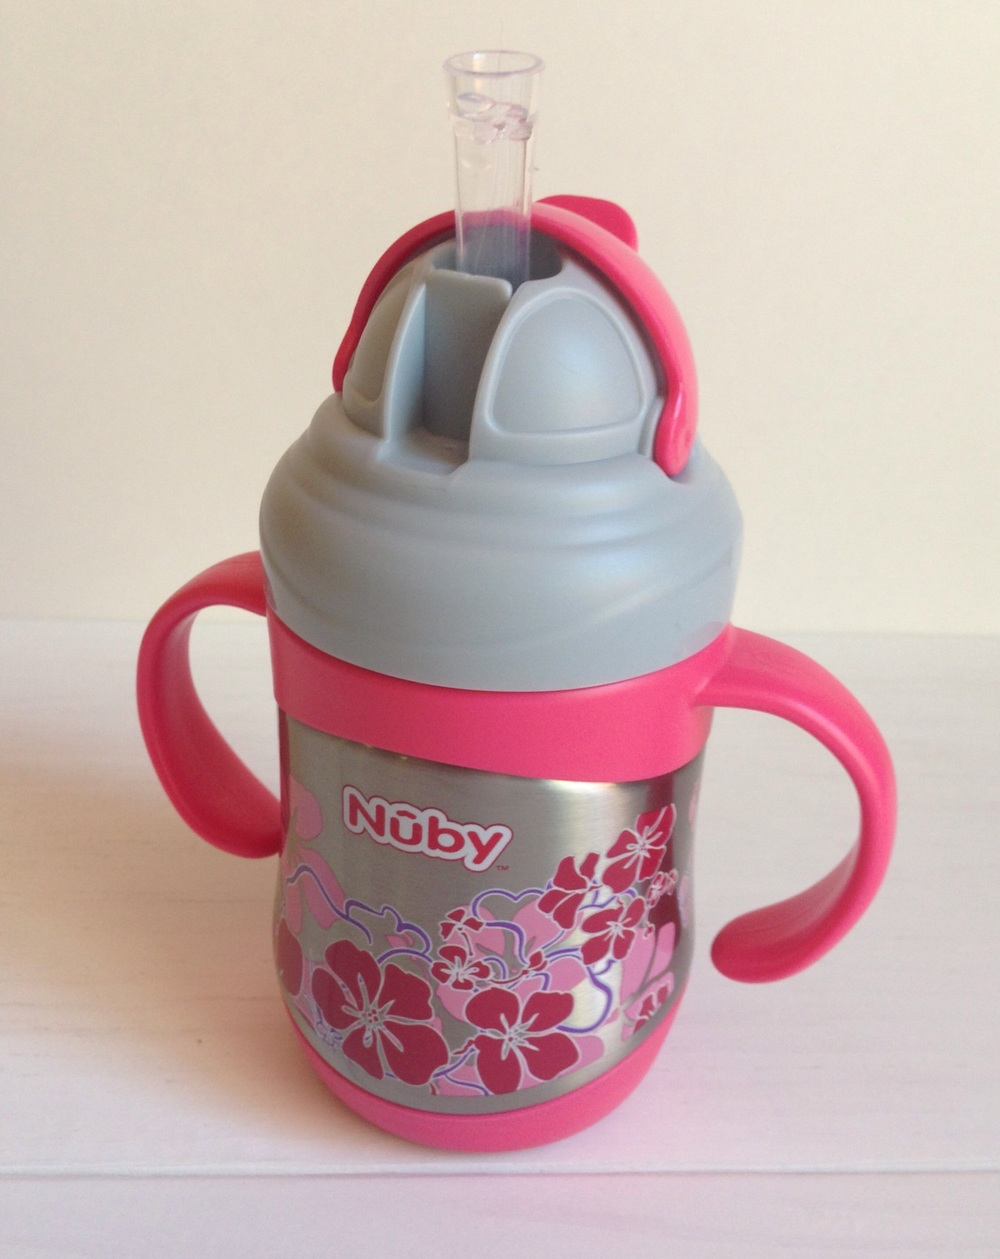 Nuby Stainless Steel No-Spill Flip-It Cup with Weighted Straw Product Review